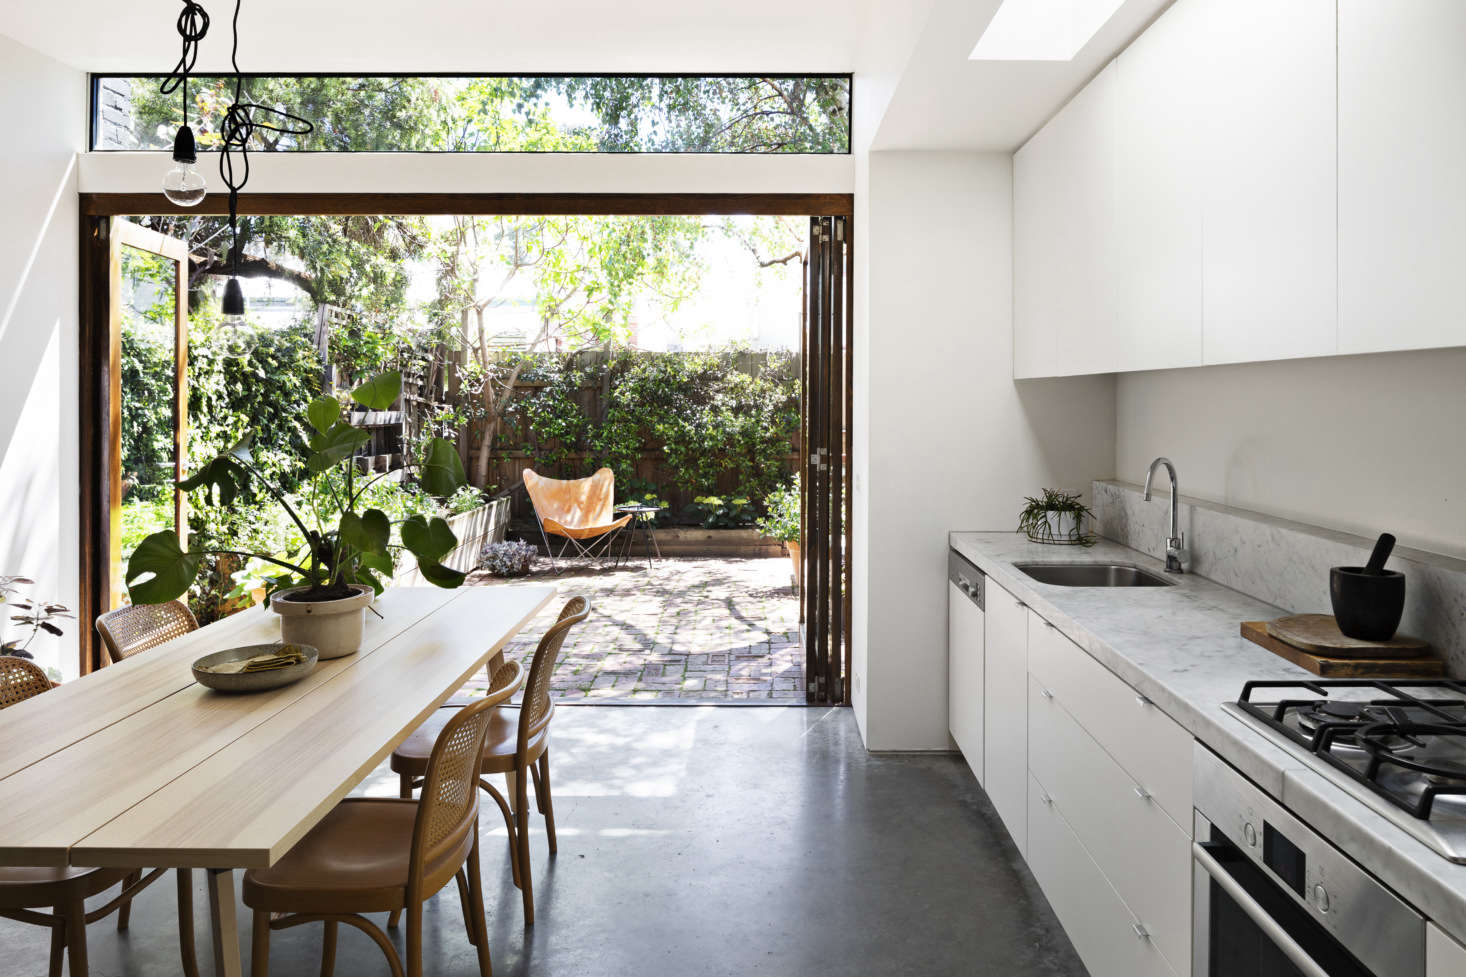 A polished concrete floor adds to the indoor-outdoor vibe. The kitchen cabinets are a flat-pack design that Kilpatrick and her husband painted and assembled themselves—&#8